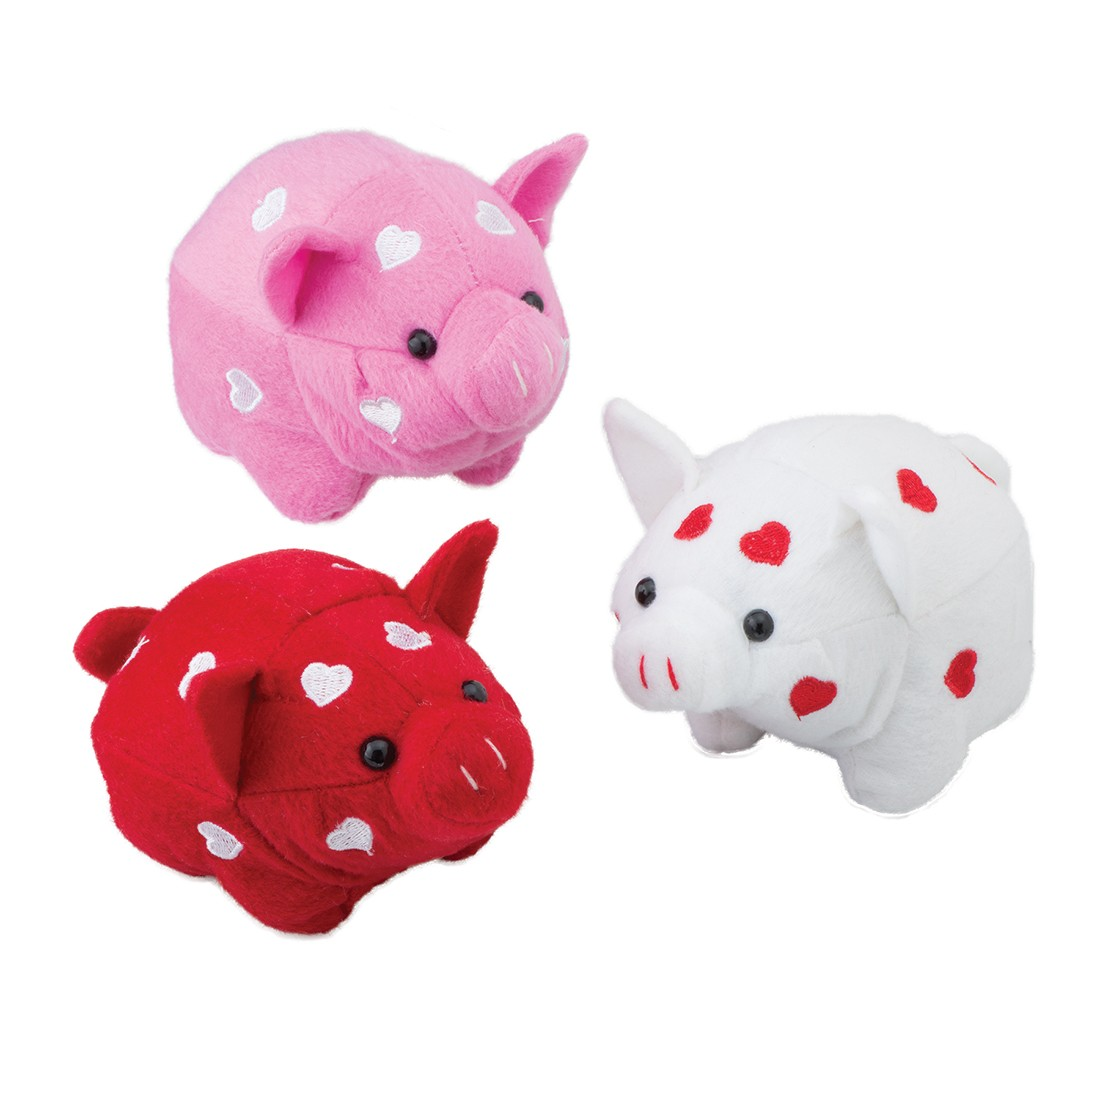 Valentine's Day Plush Pigs [image]